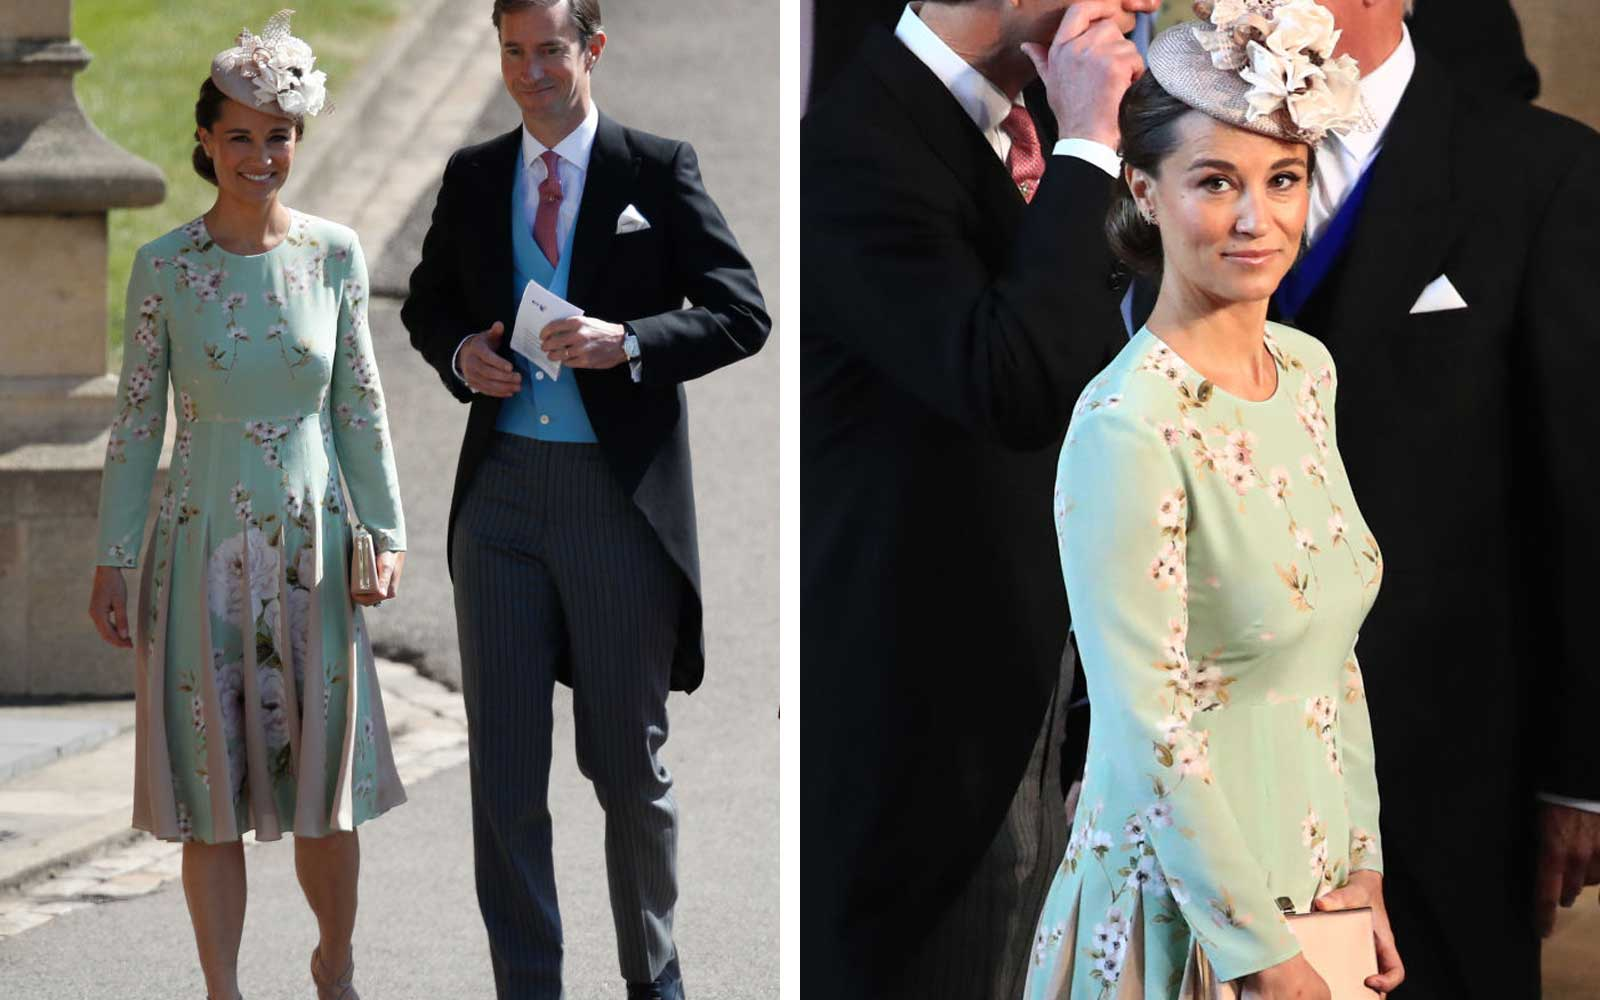 Pippa Middleton Just Arrived at the Royal Wedding and You Need to See Her Dress